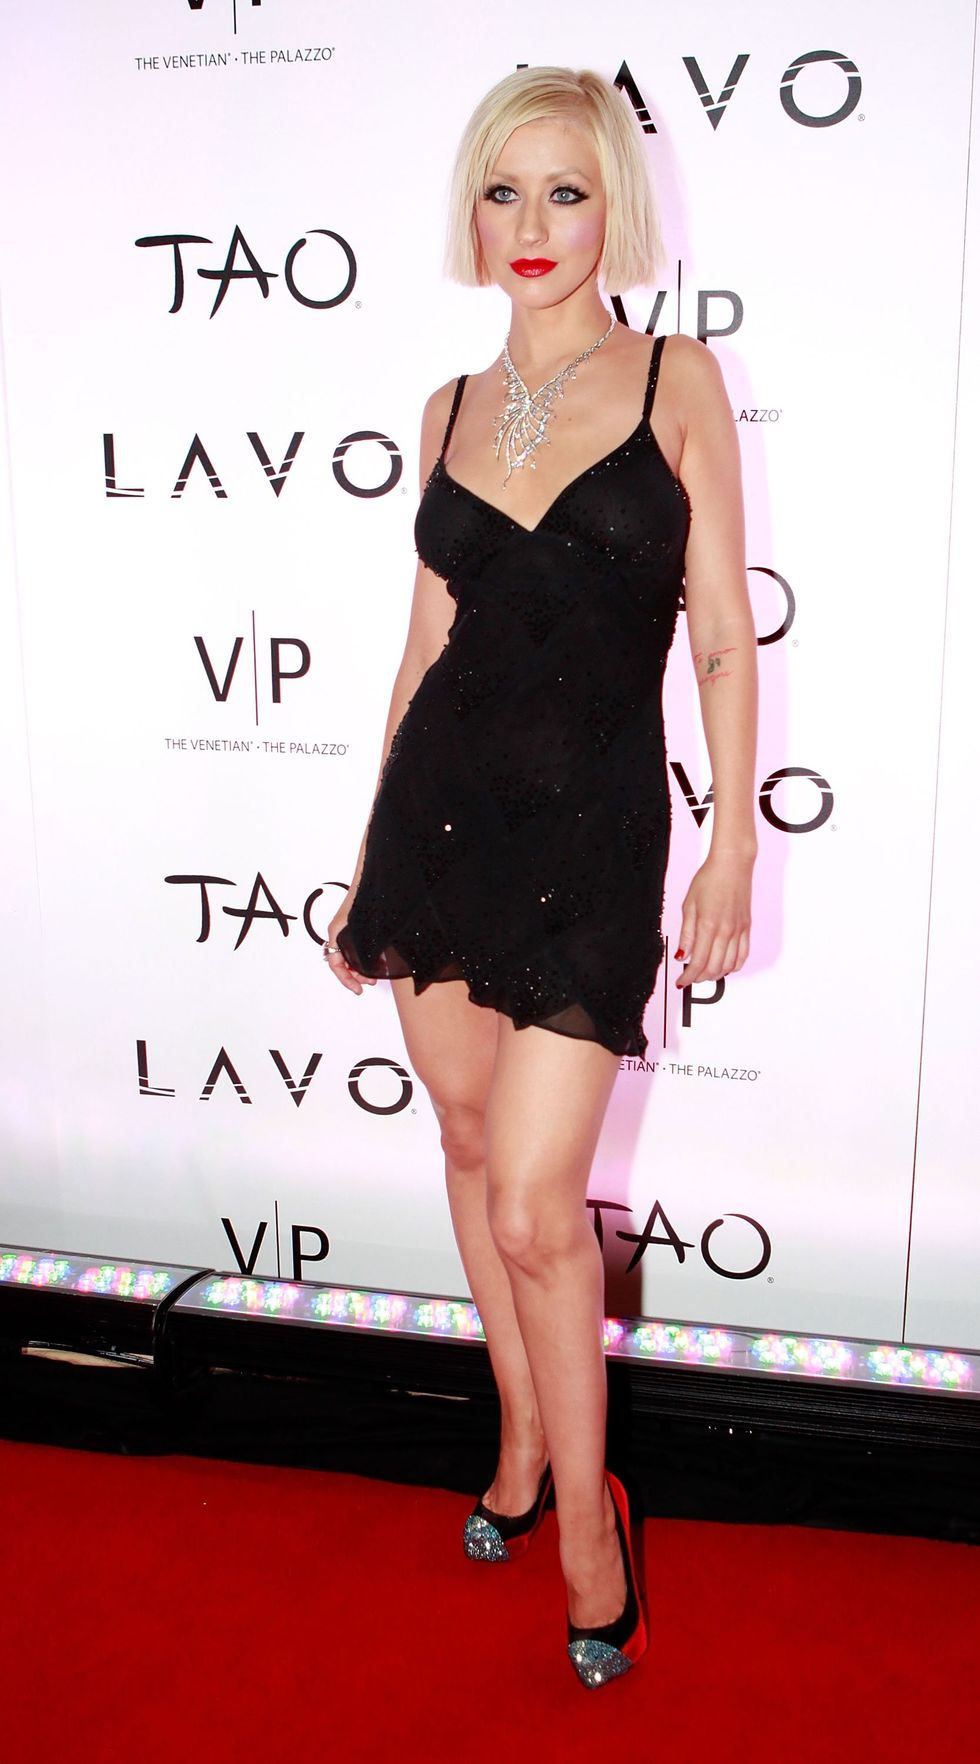 christina-aguilera-new-years-eve-party-in-las-vegas-01